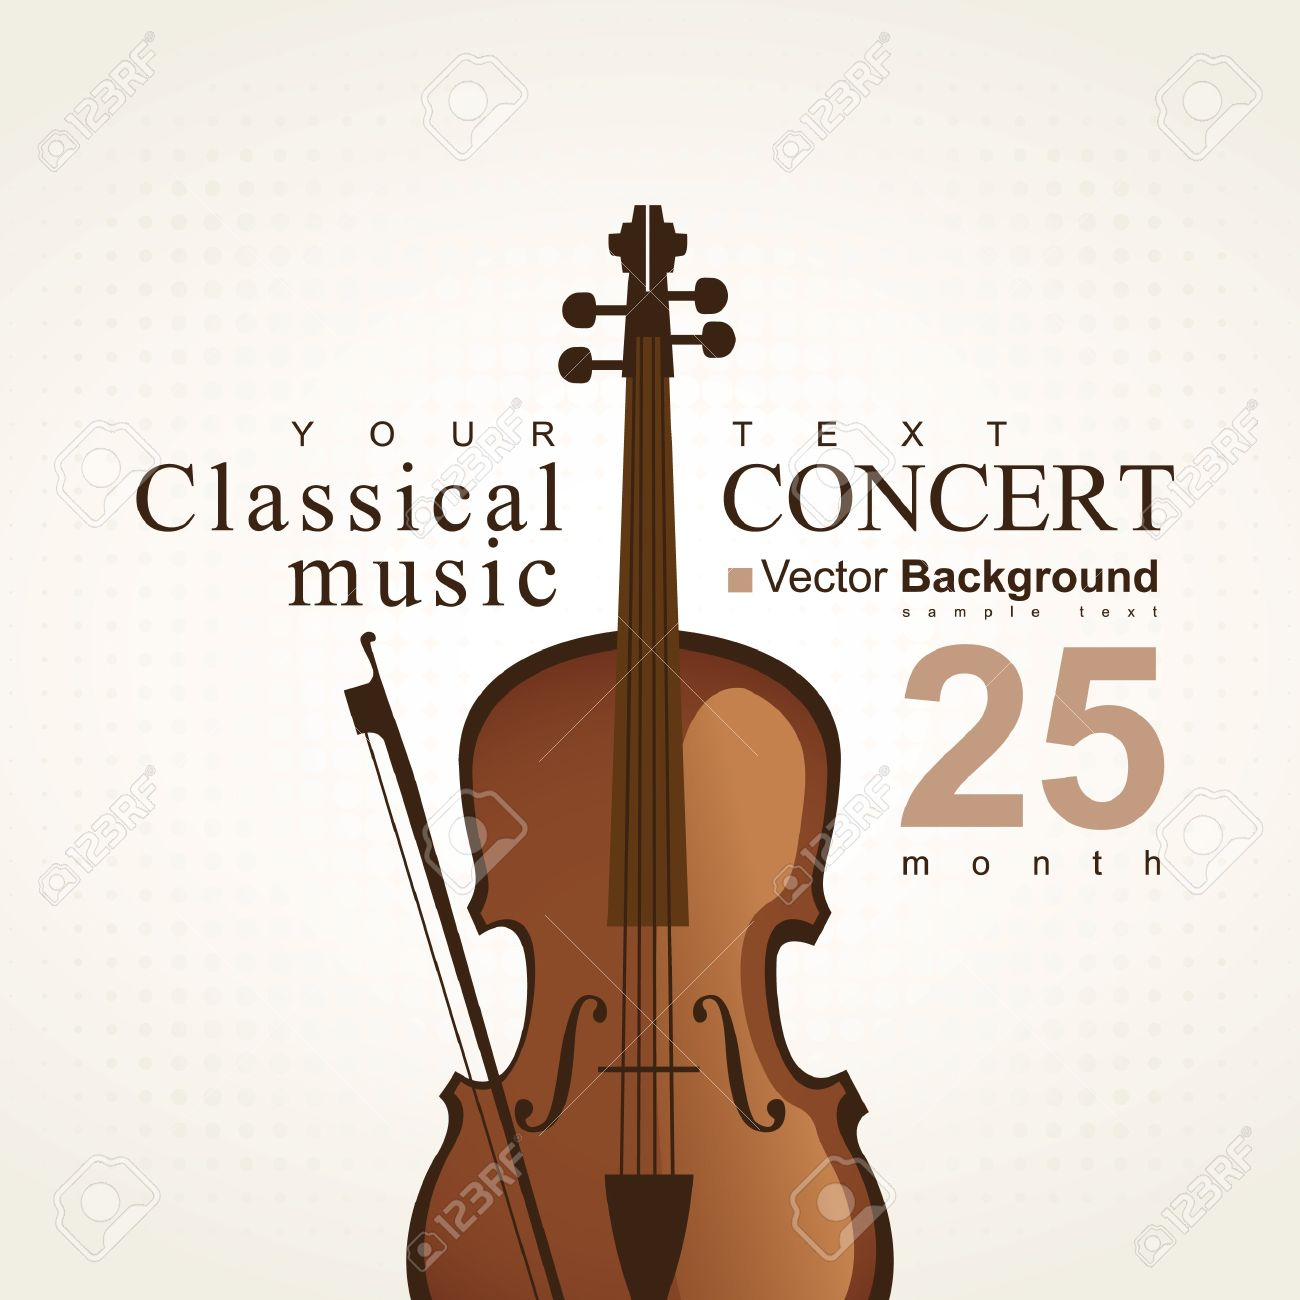 Poster For A Concert Of Classical Music With Violin Stock Vector